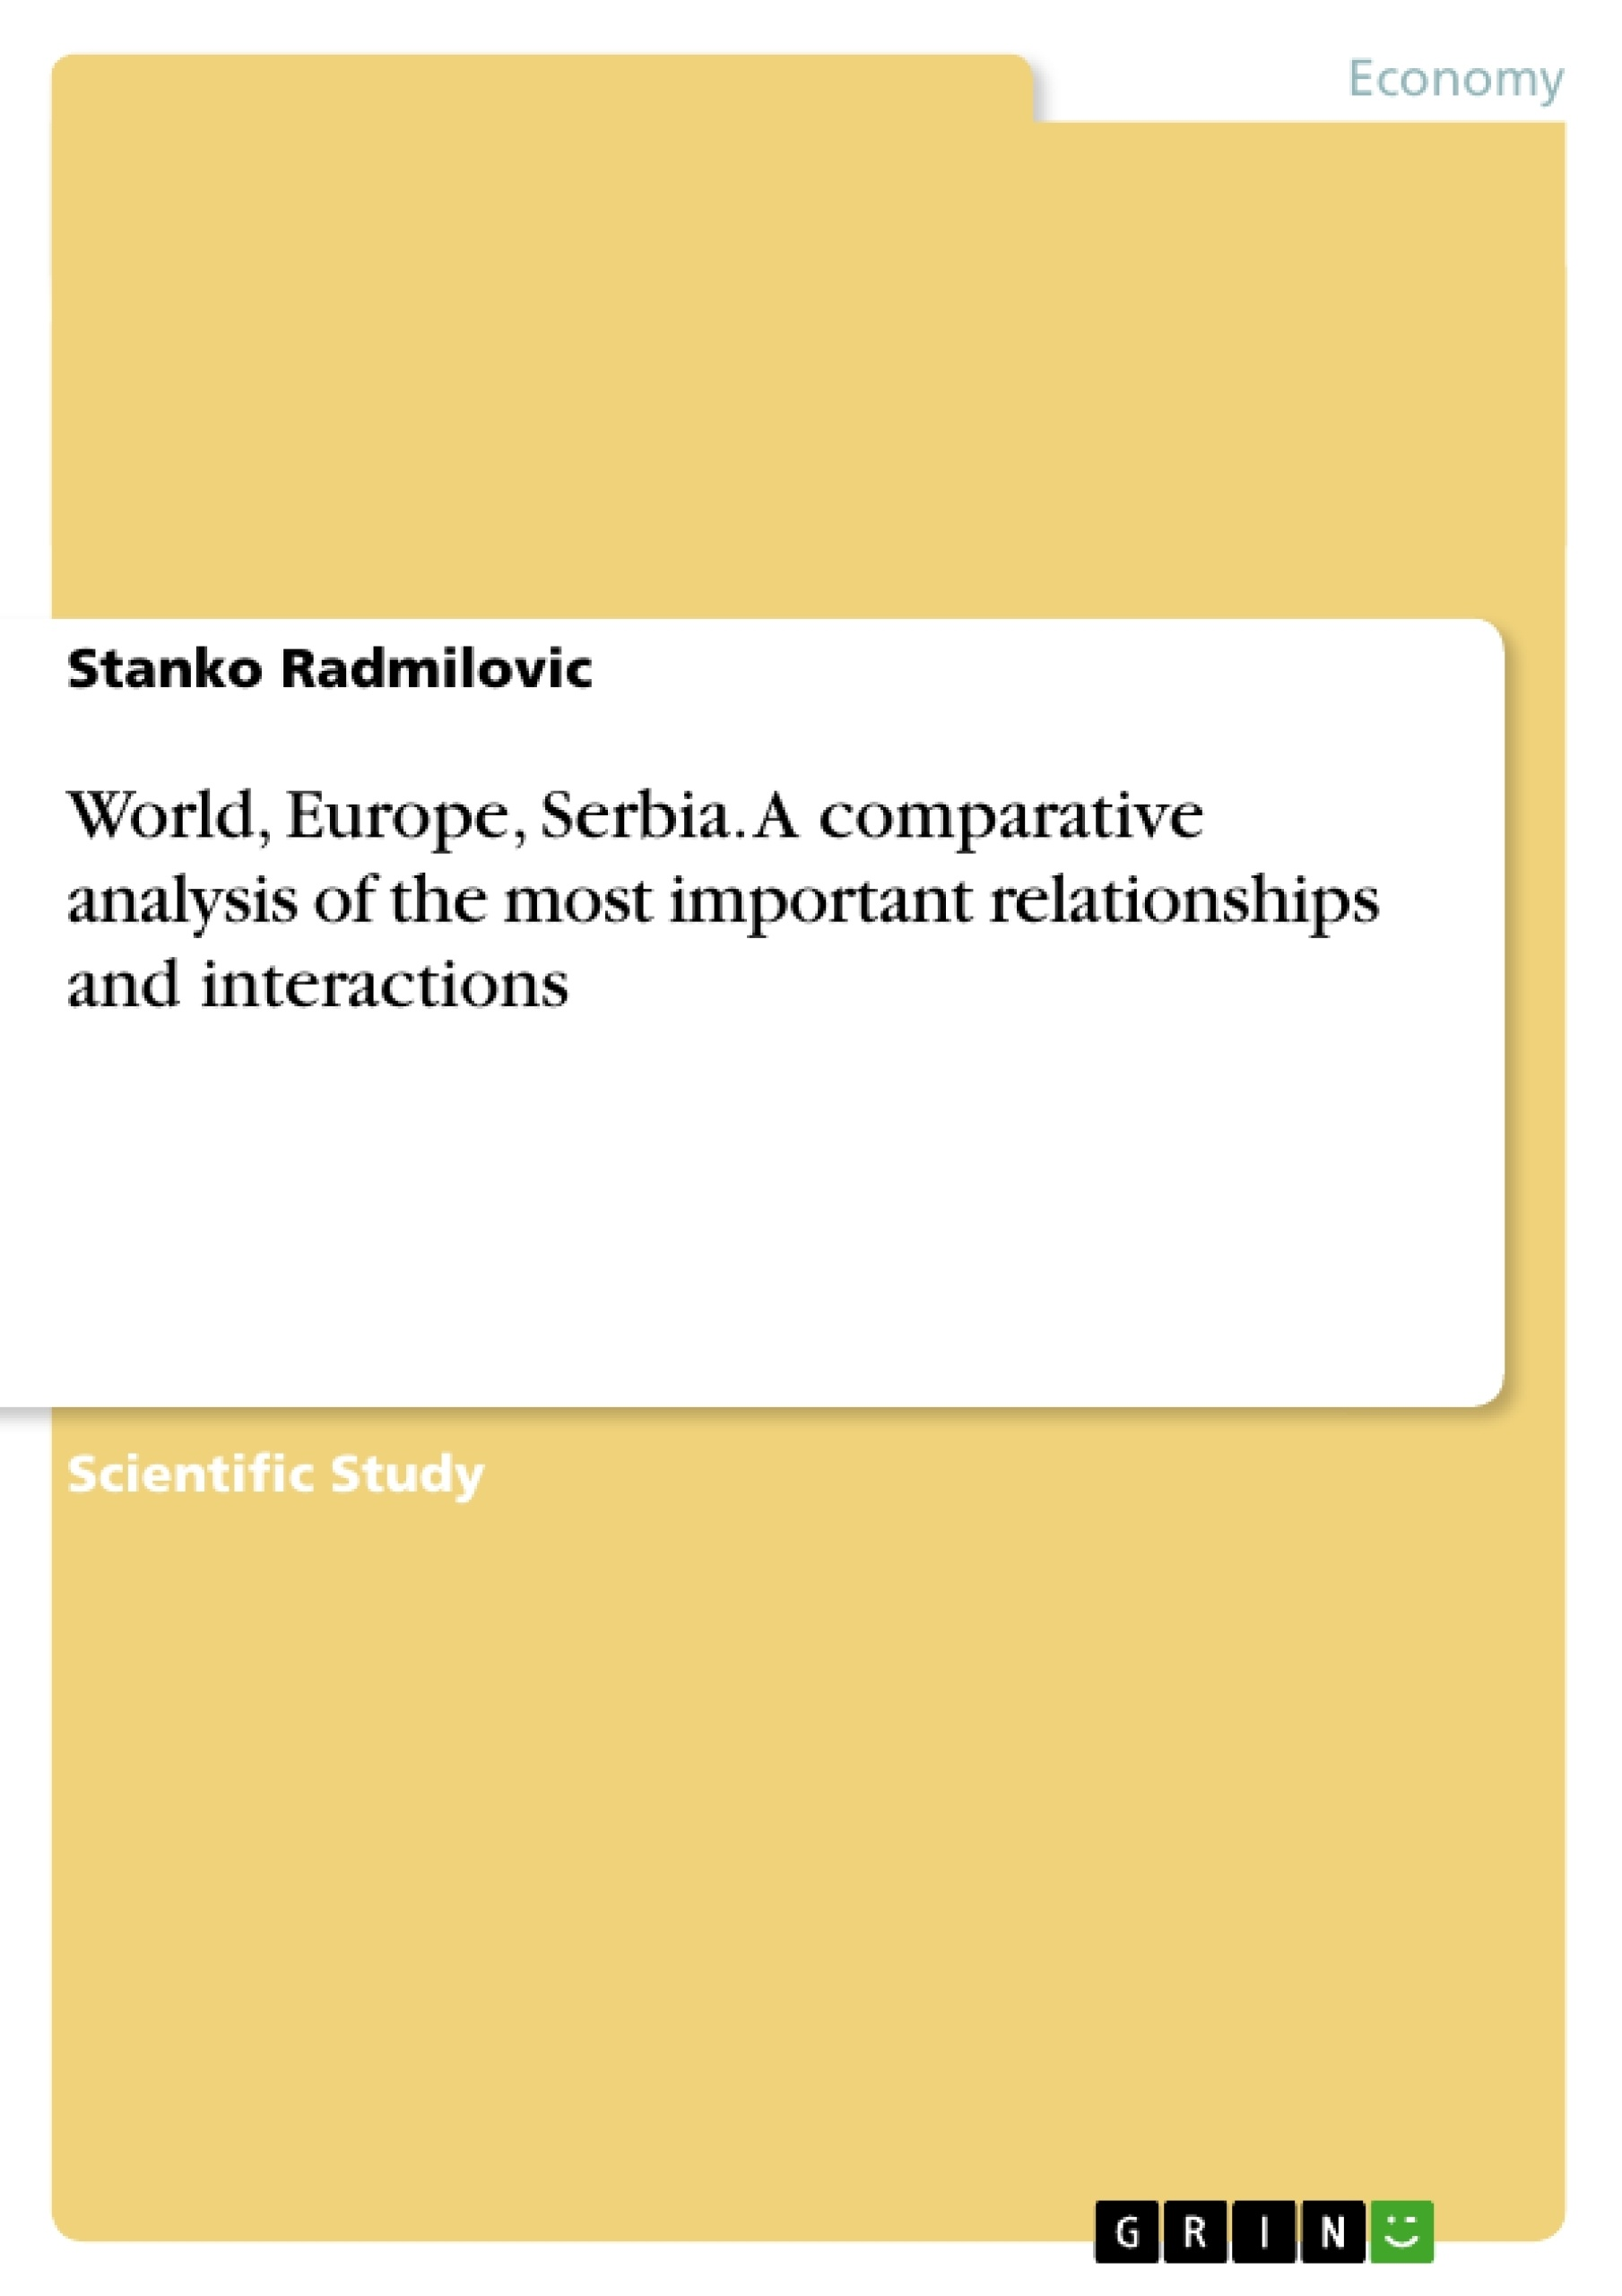 Title: World, Europe, Serbia. A comparative analysis of the most important relationships and interactions